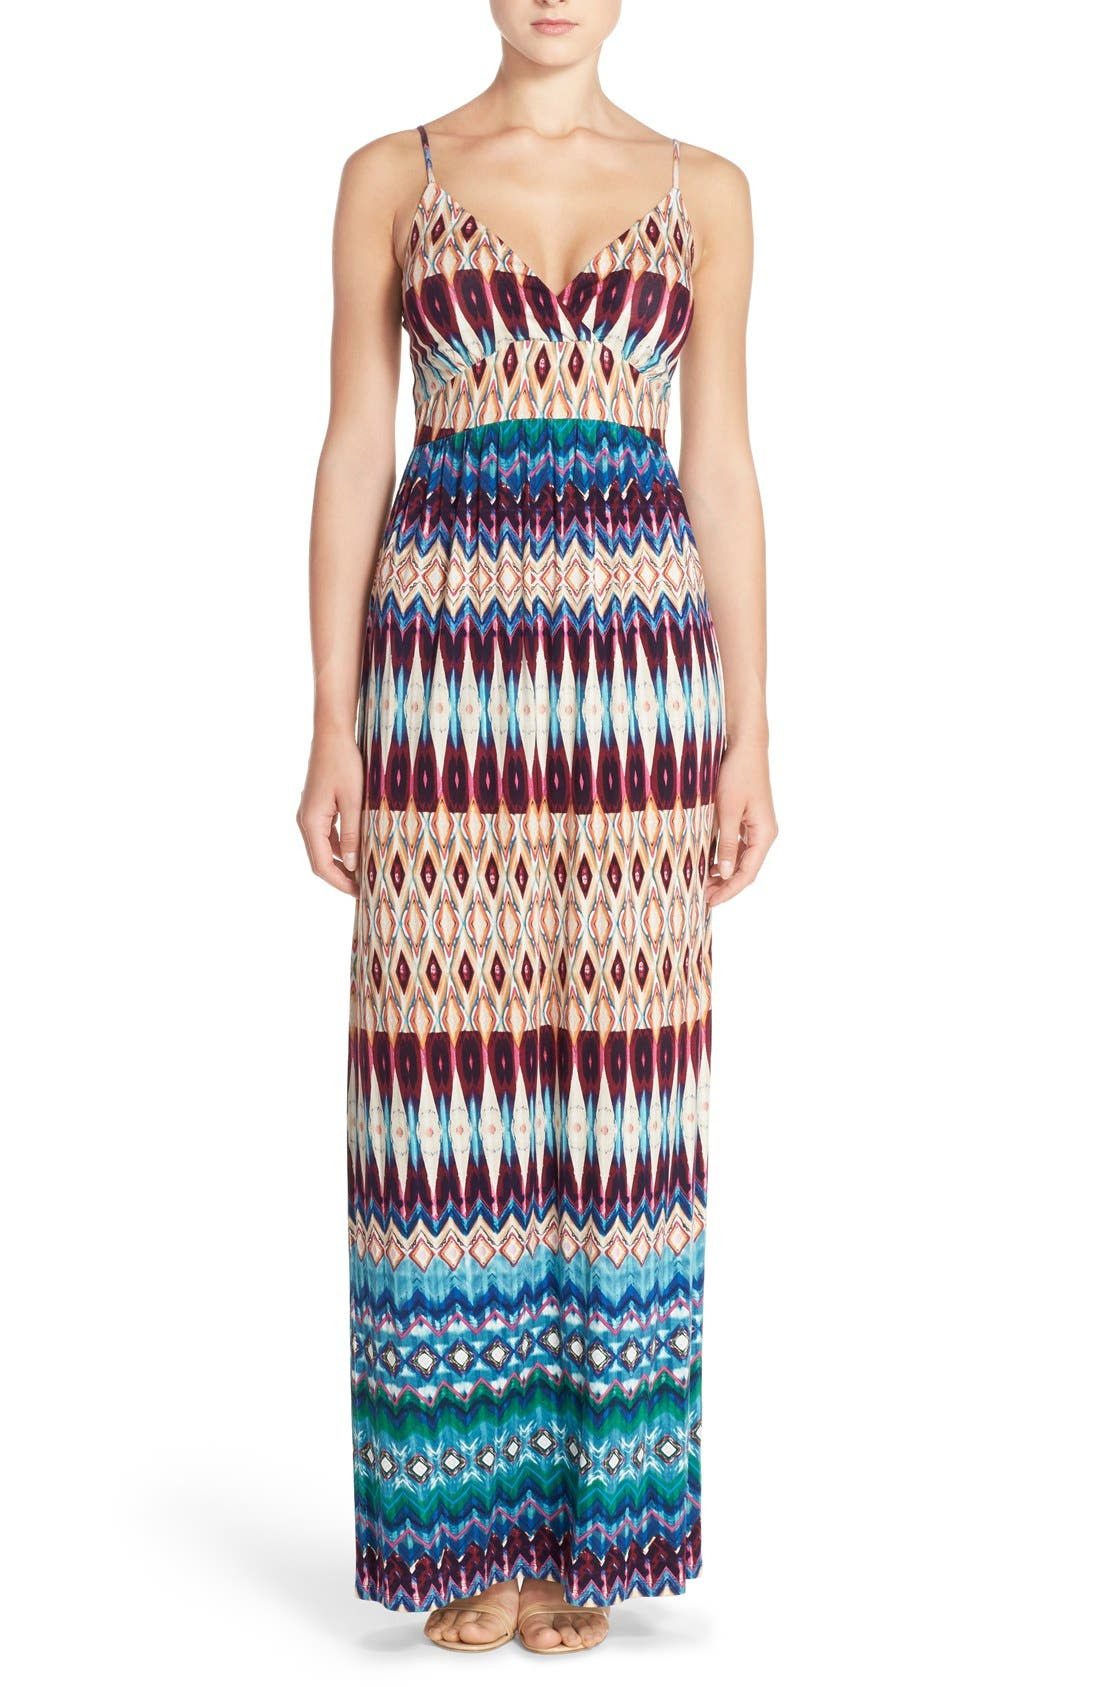 Alternate Image 1 Selected - Felicity & Coco Floral Print Jersey Maxi Dress (Regular & Petite) (Nordstrom Exclusive)